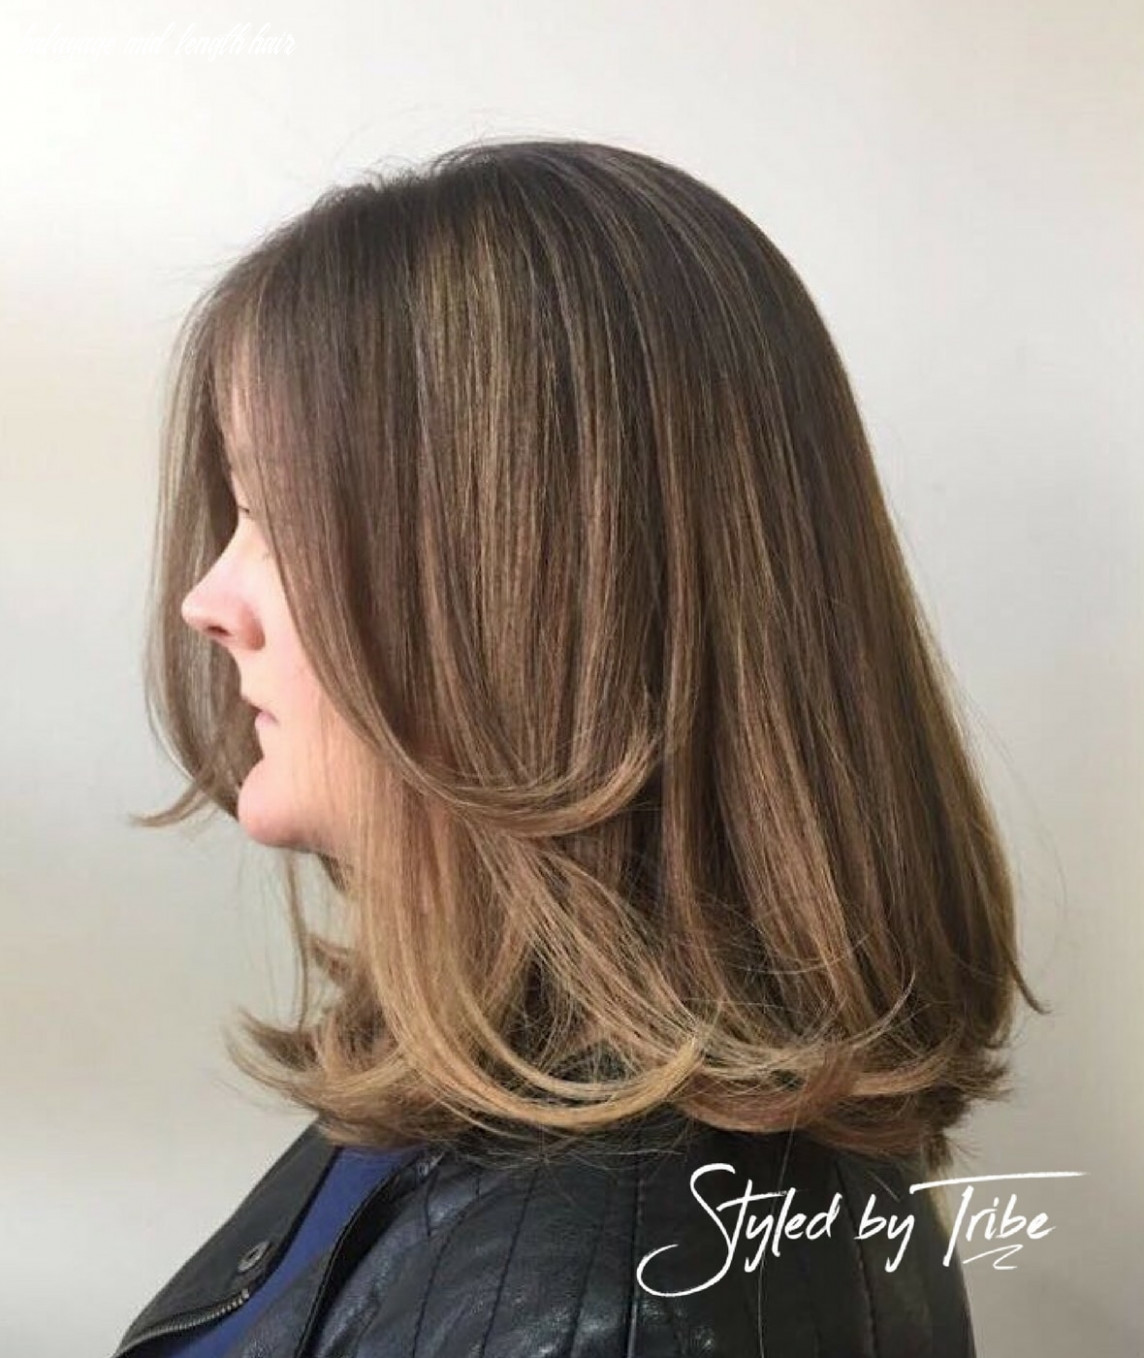 Balayage & mid length cut | styled by danielle tribe hair salon balayage mid length hair